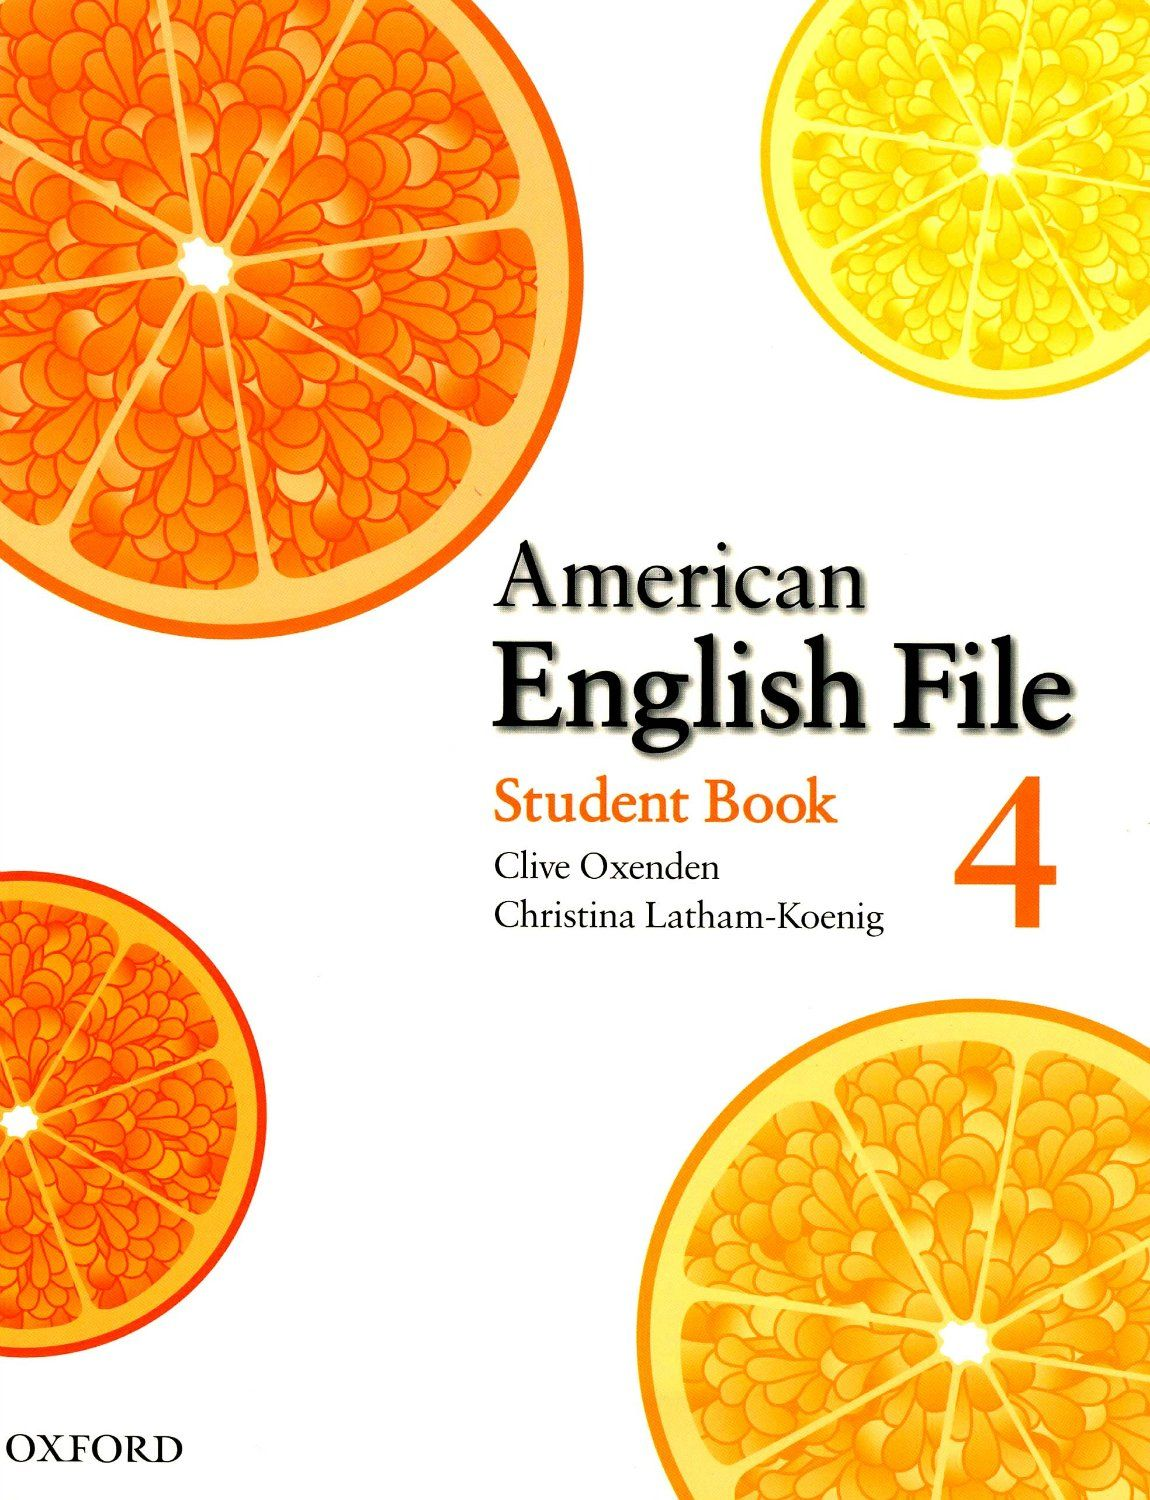 American English File 4 Student Book Class Audio Cds Dvd Video